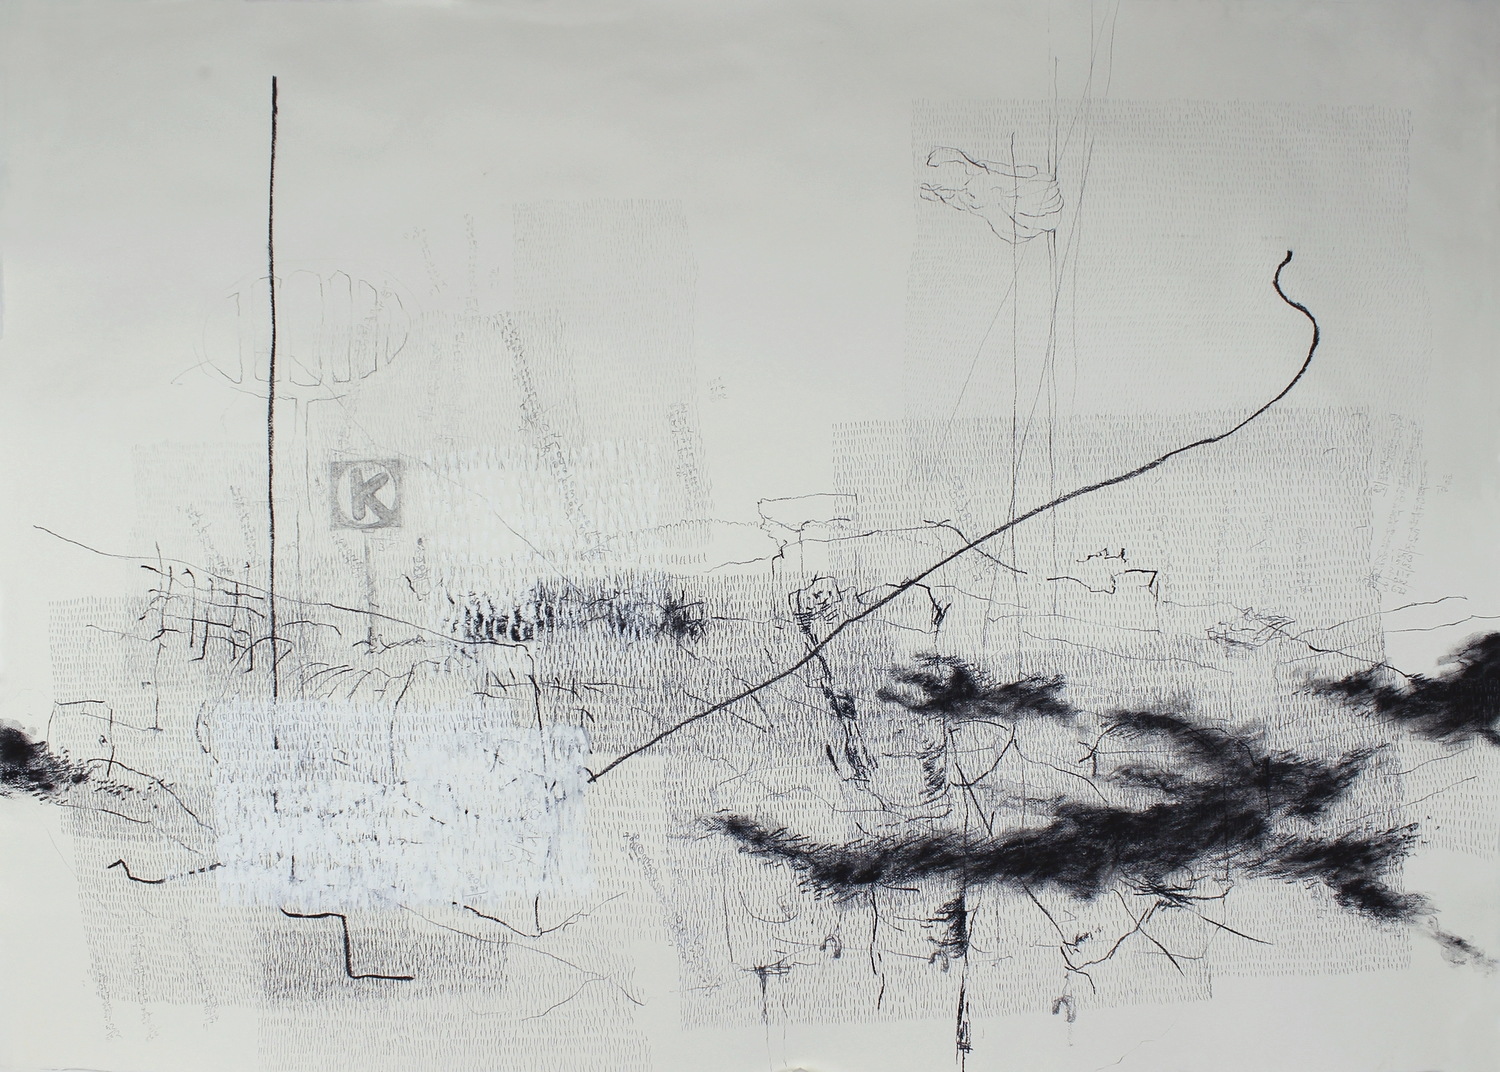 """31,014 Steps to Hobart (Phoenix) Graphite, charcoal, oil on paper,  17.5"""" x 25.2"""", 2010"""